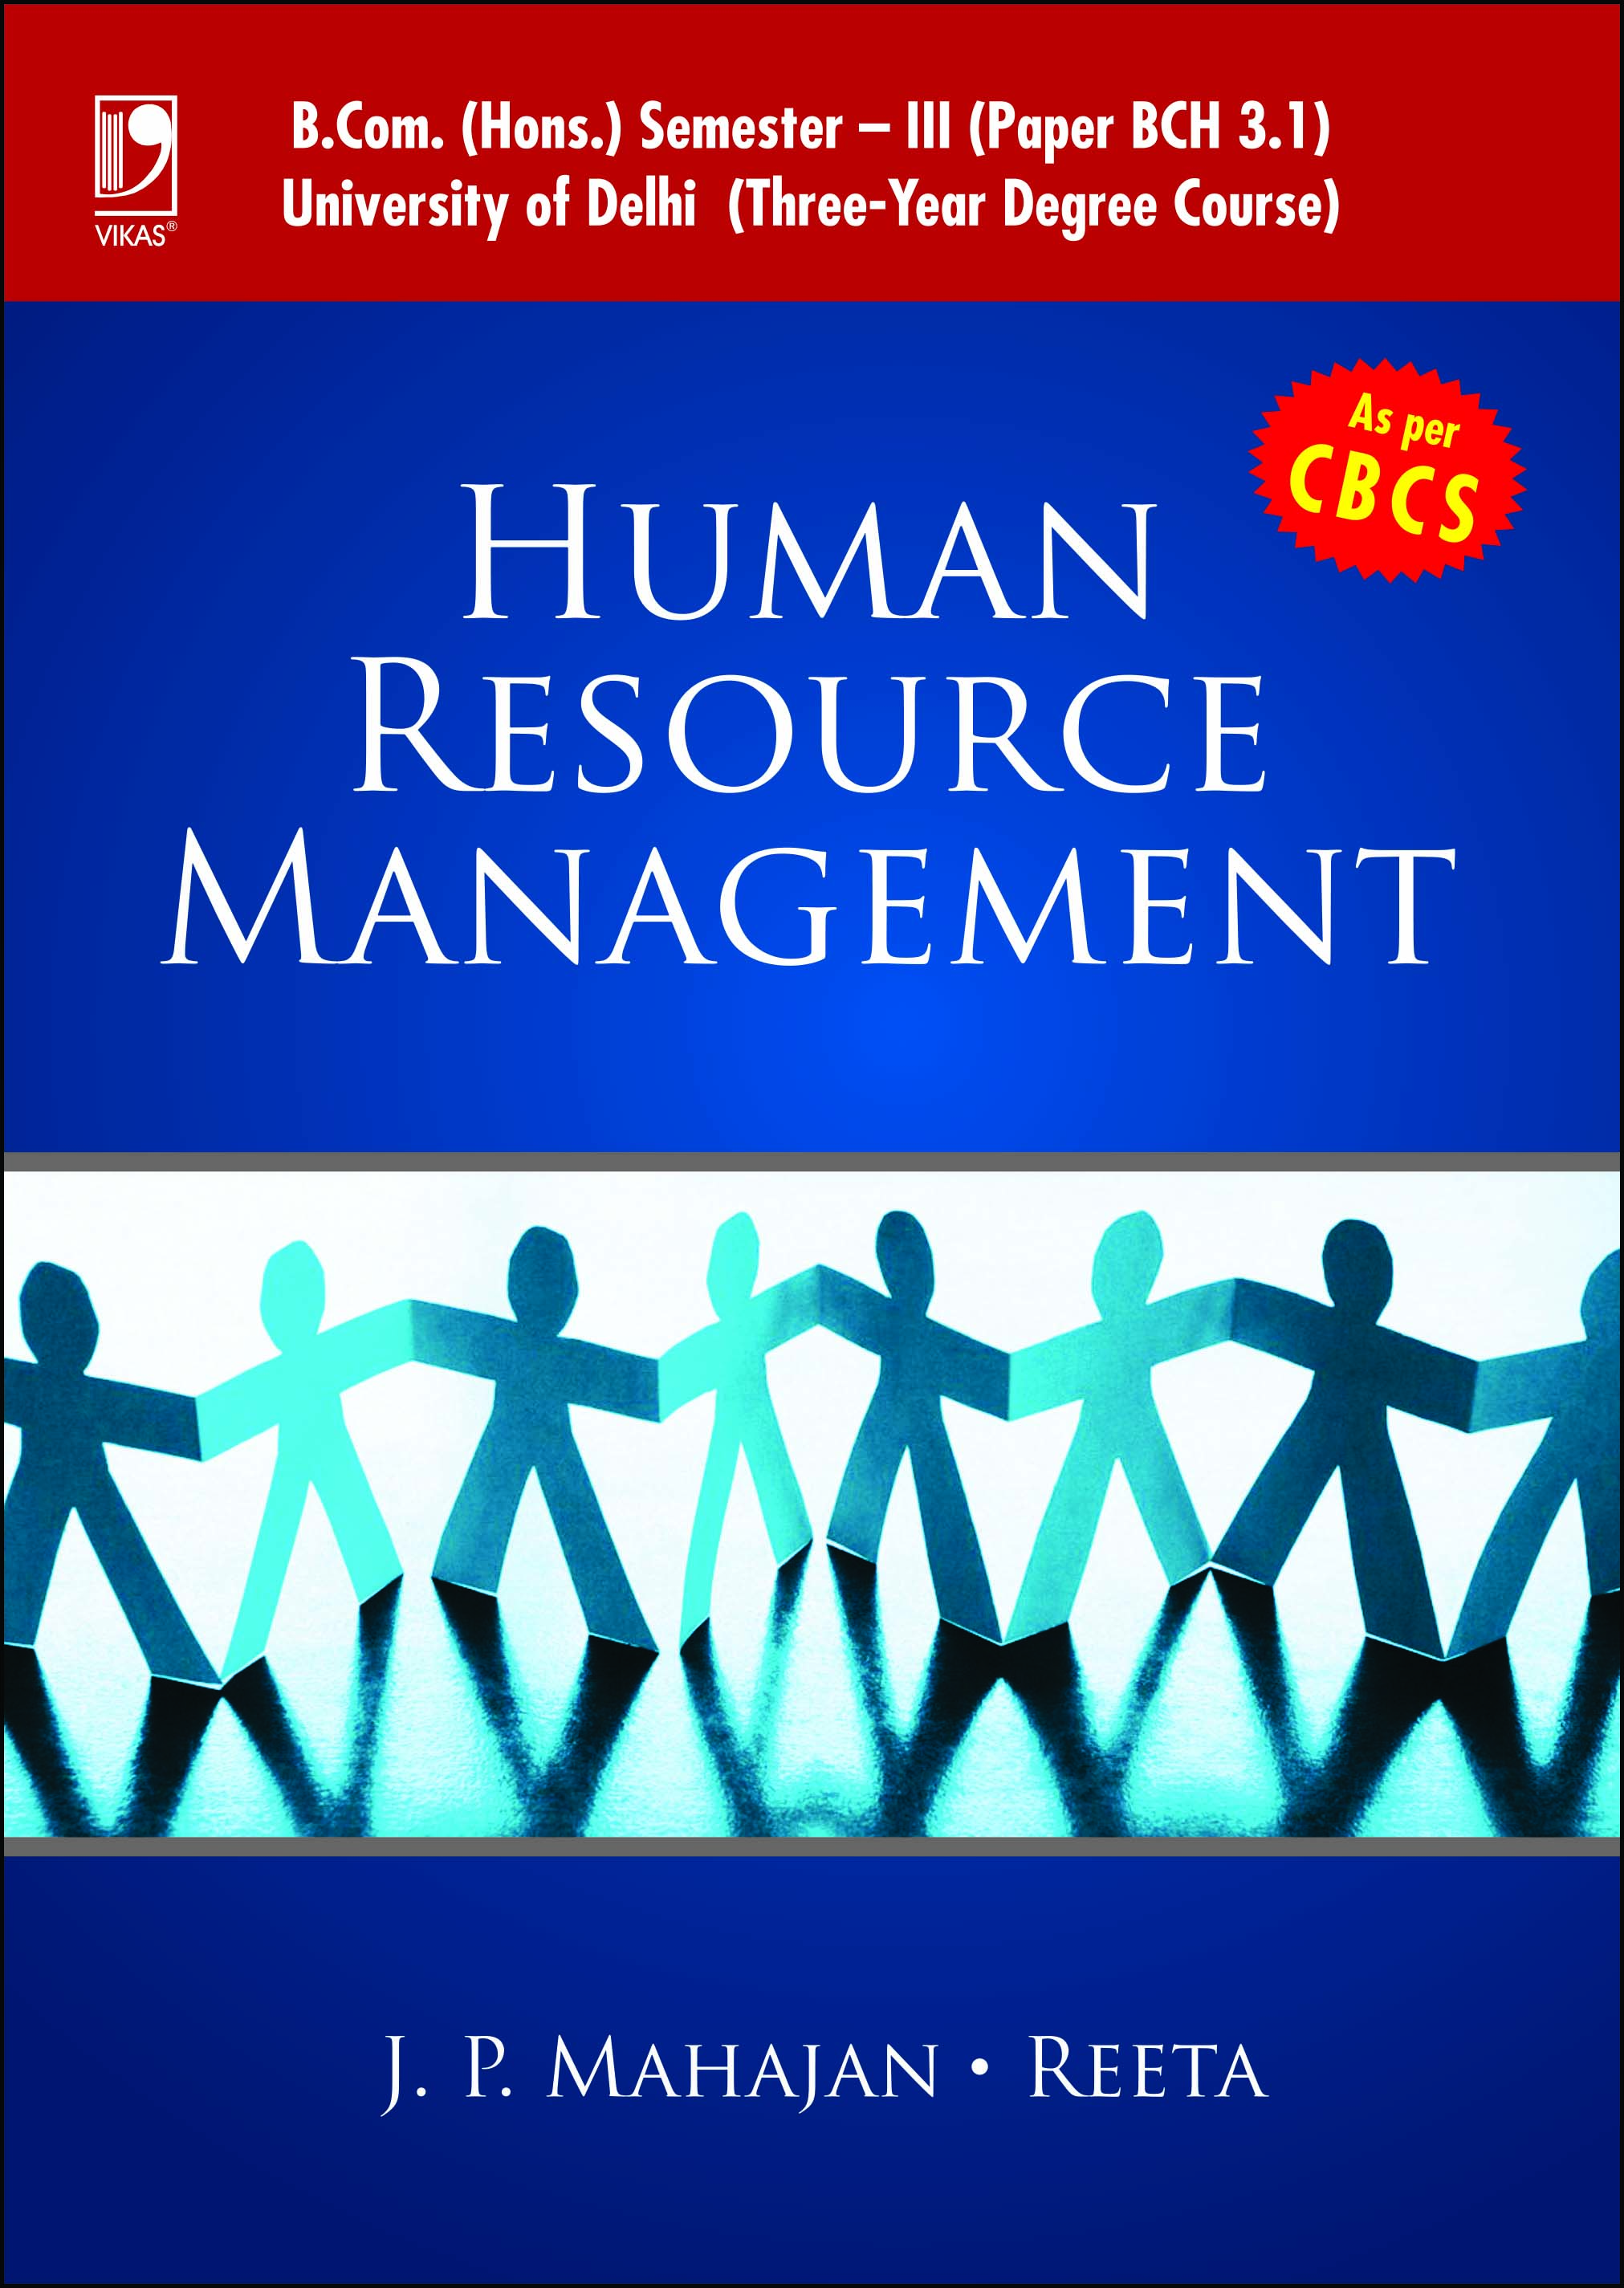 HUMAN RESOURCE MANAGEMENT: (FOR B.COM, SEM.-3, DELHI UNIVERSITY, AS PER CBCS)